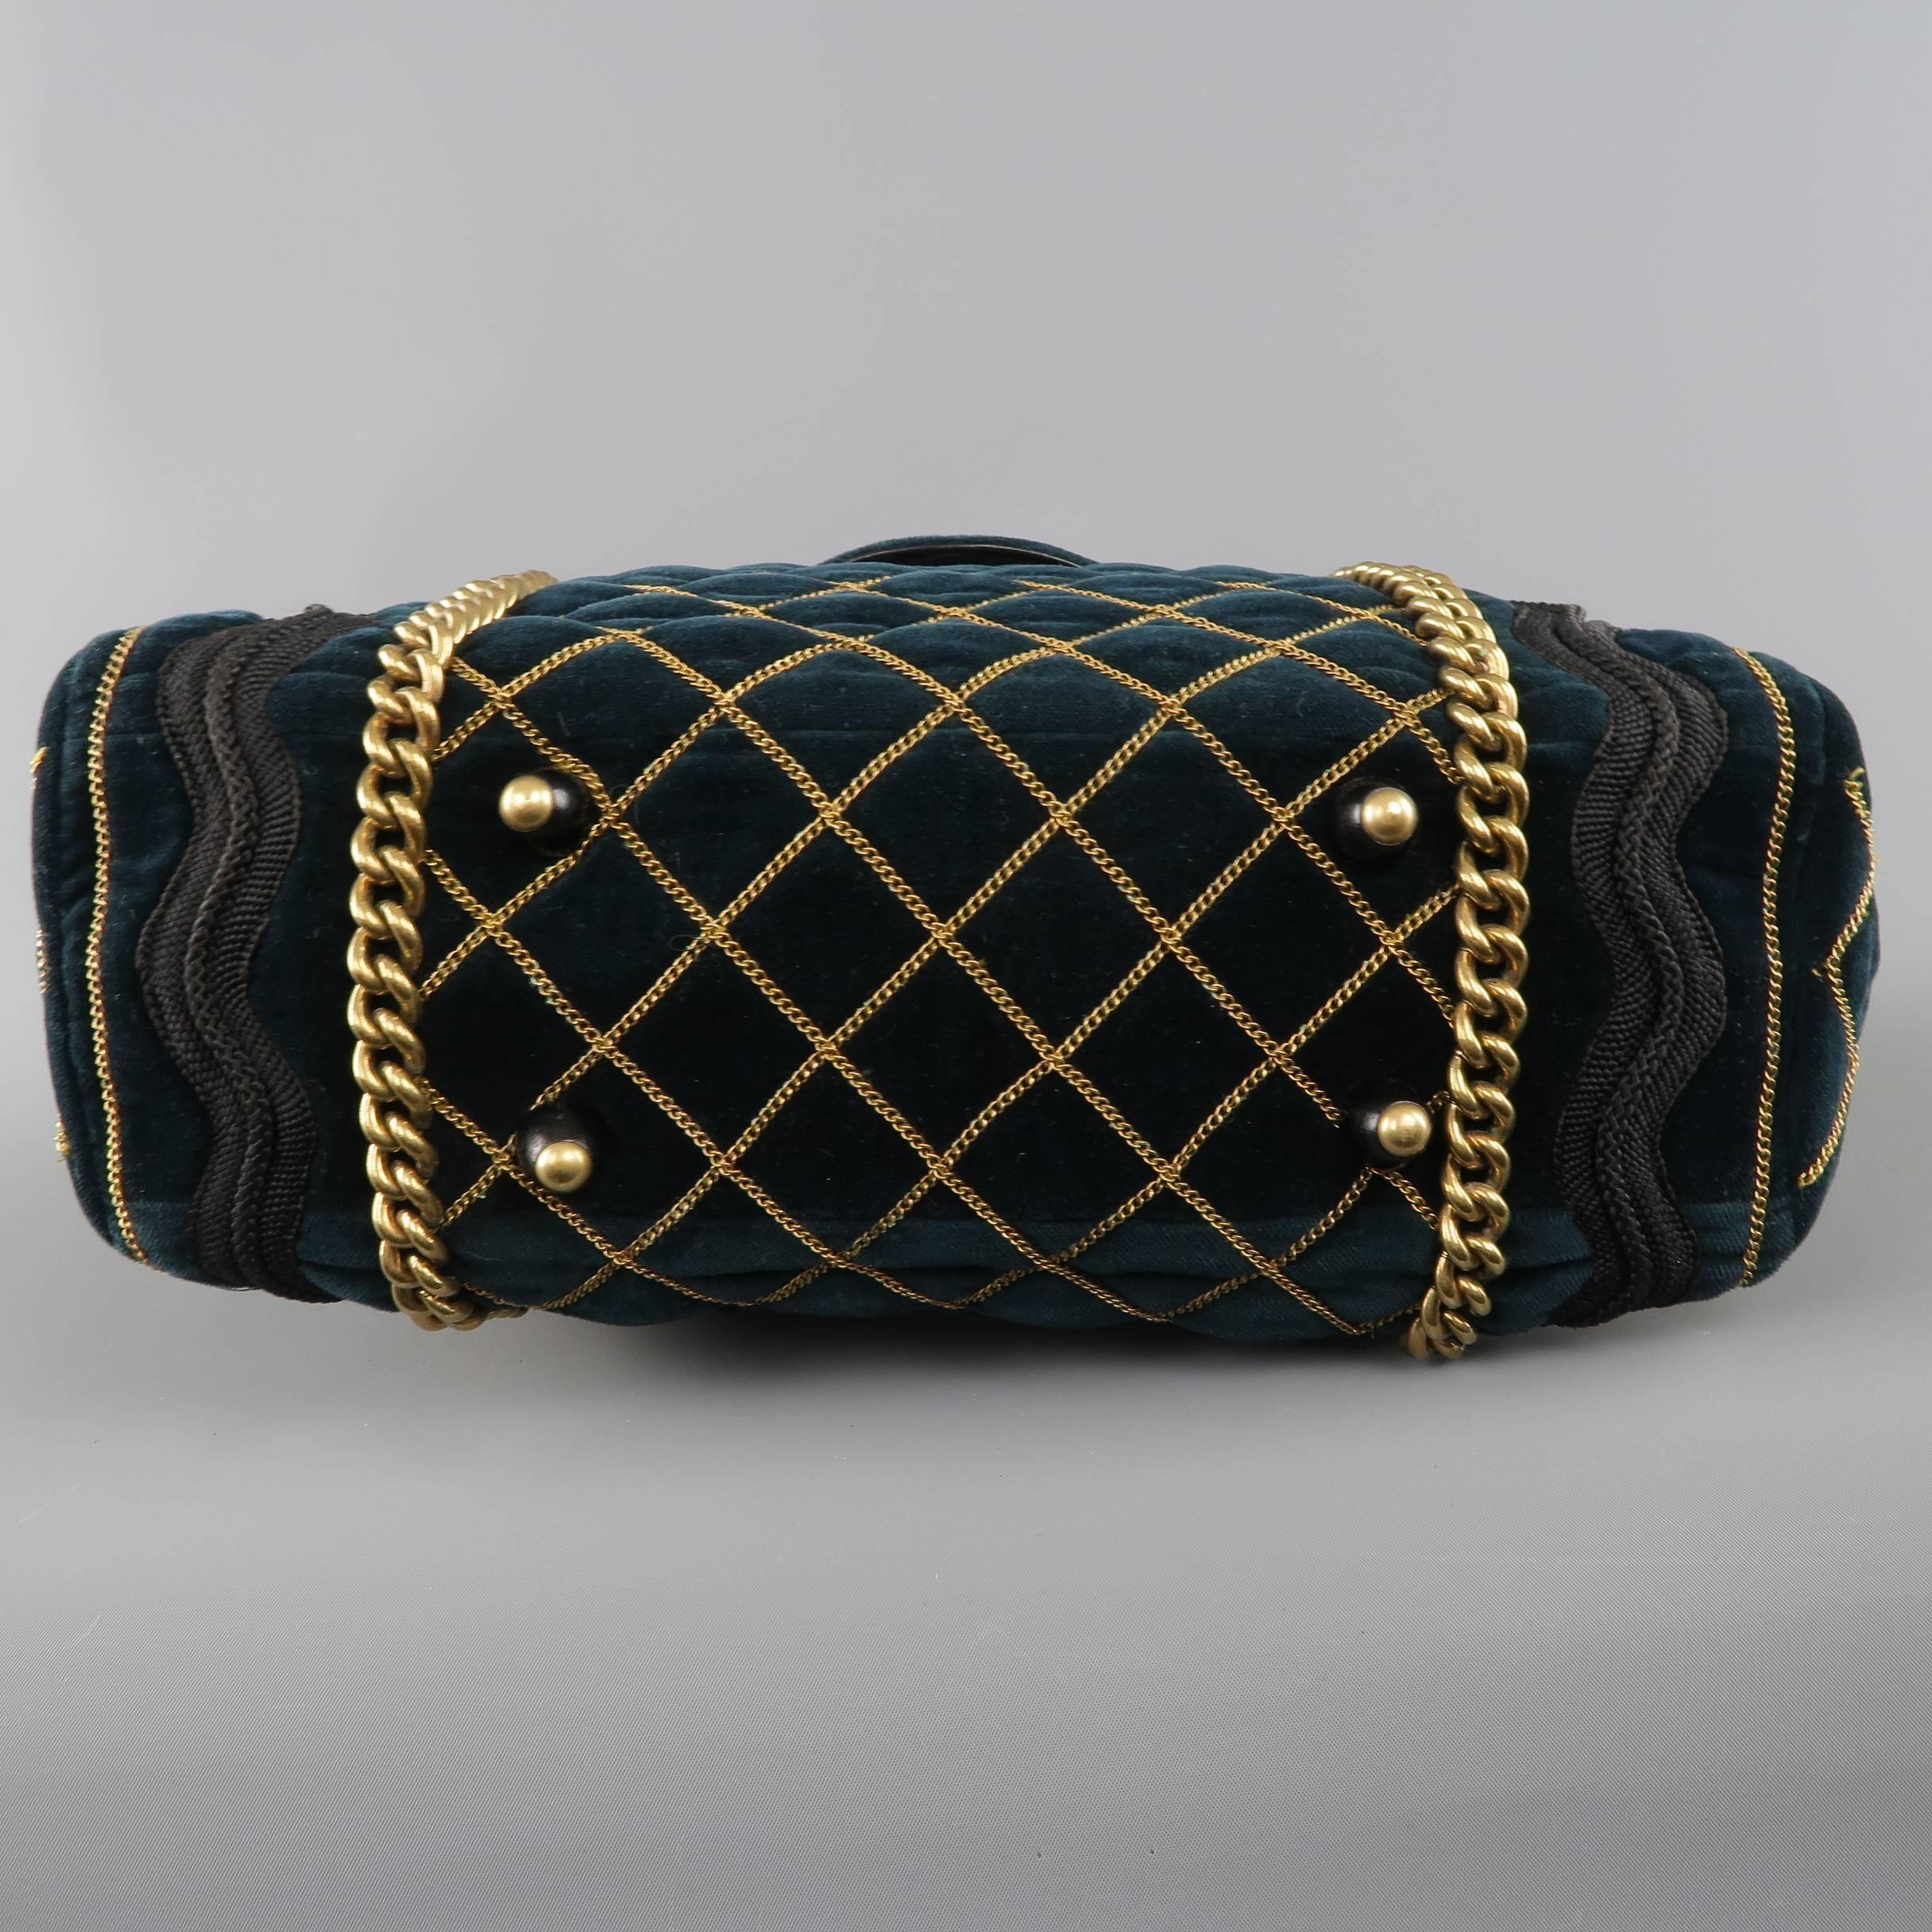 Yves Saint Laurent Green and Gold Chain Quilted Velvet Sac Luxembourg Bag  at 1stdibs b08863c032a85